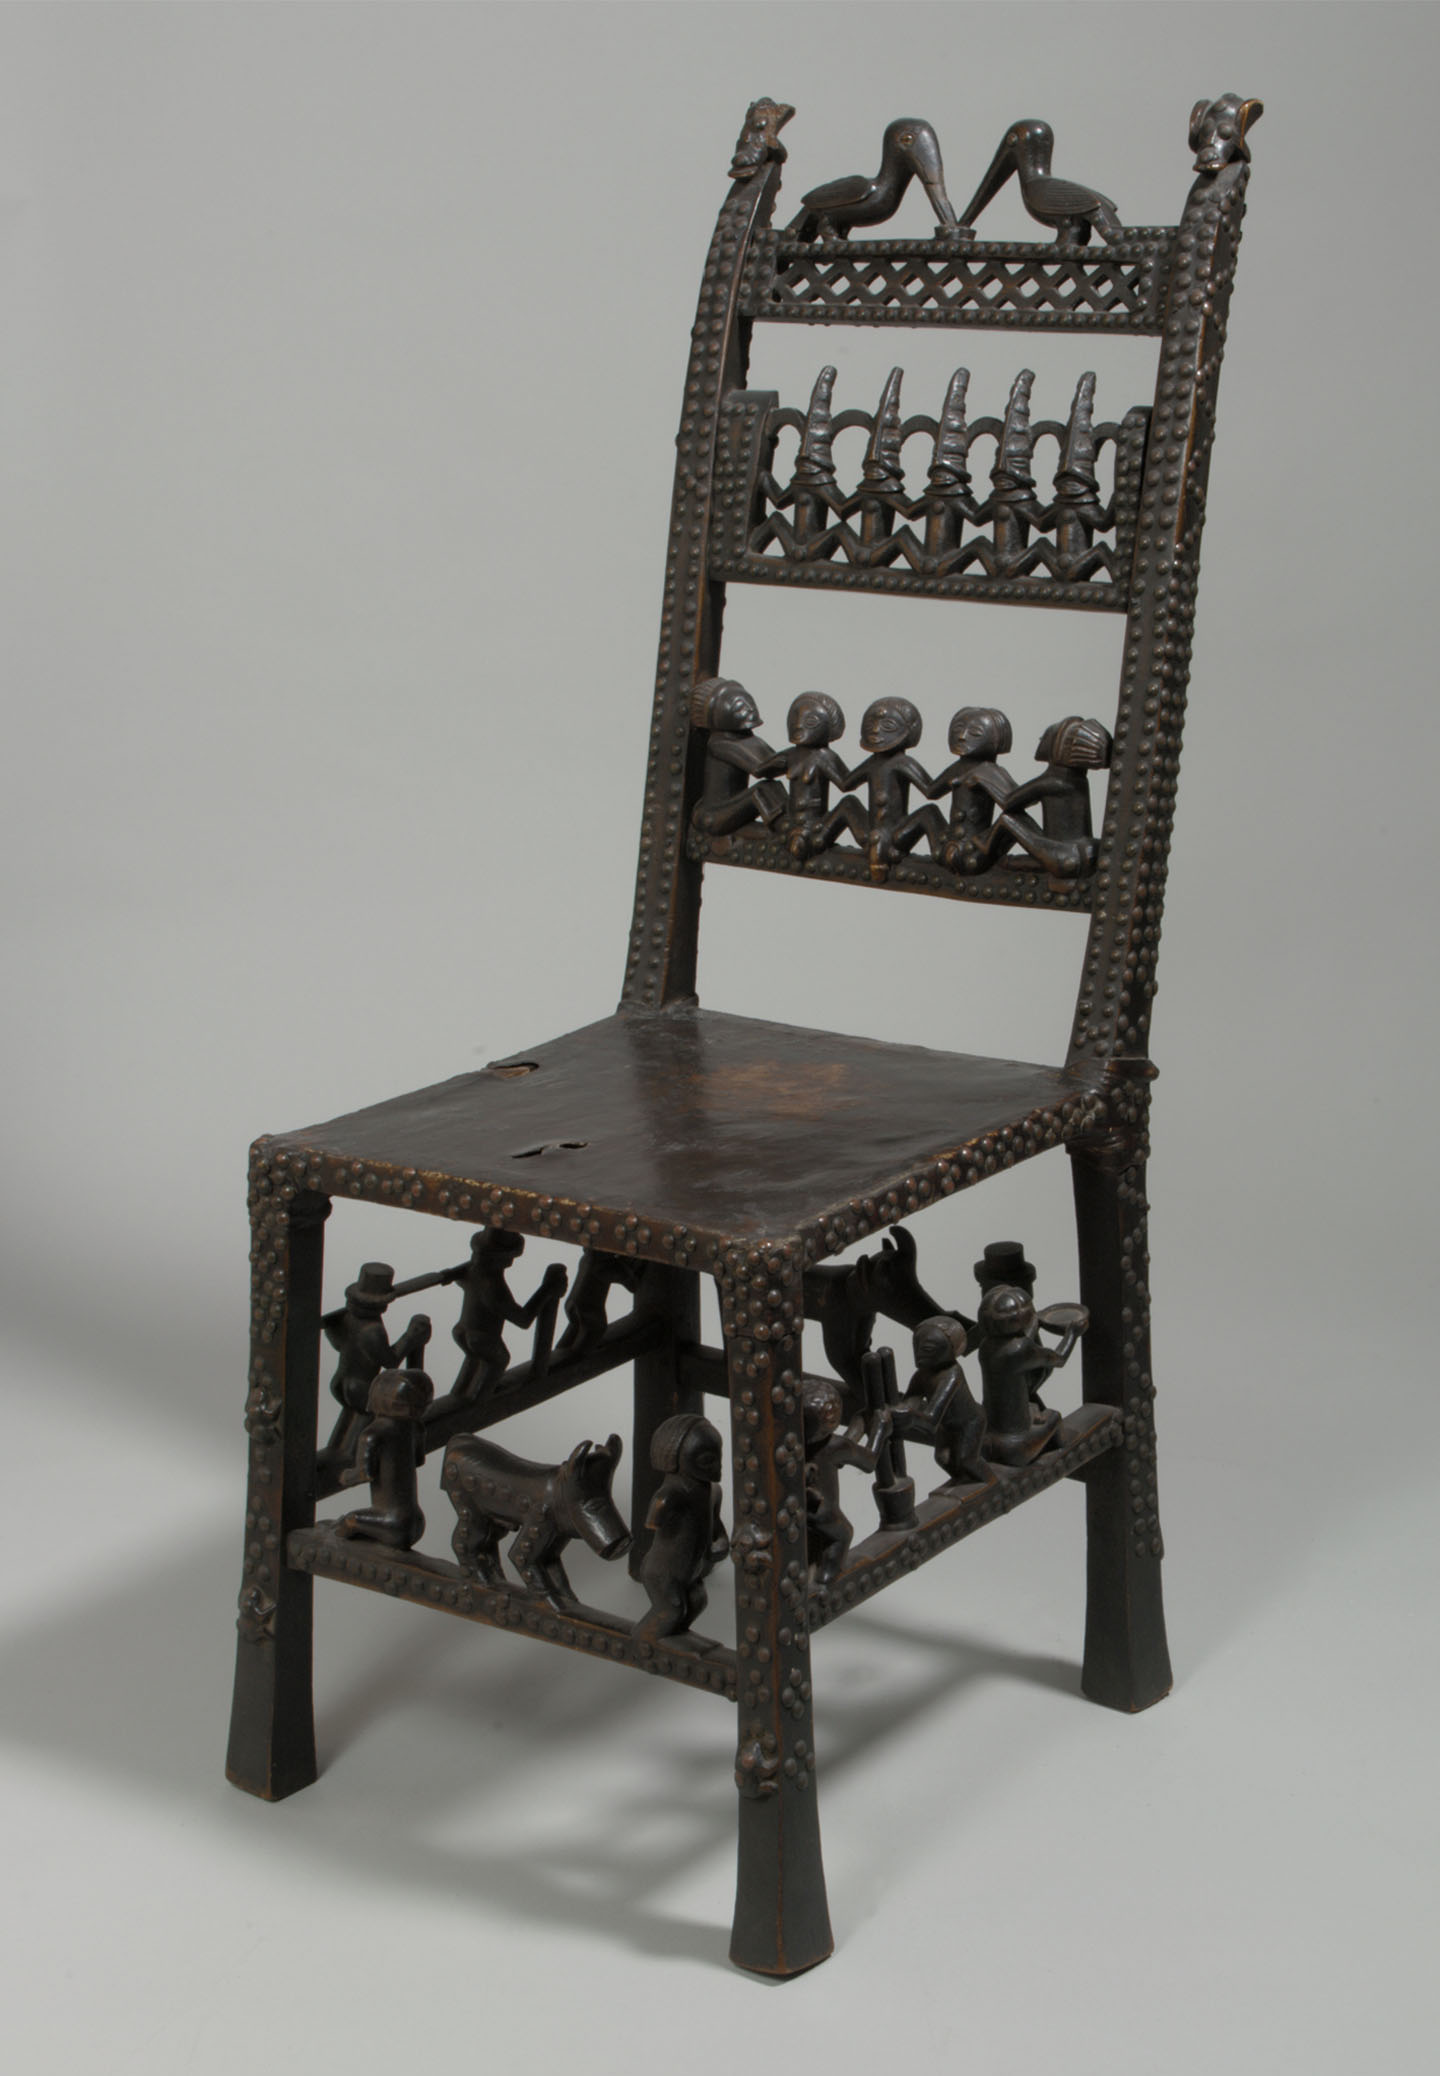 A dark wood African side chair decorated with seated figures and animals on the chair back, and on the rungs between the legs